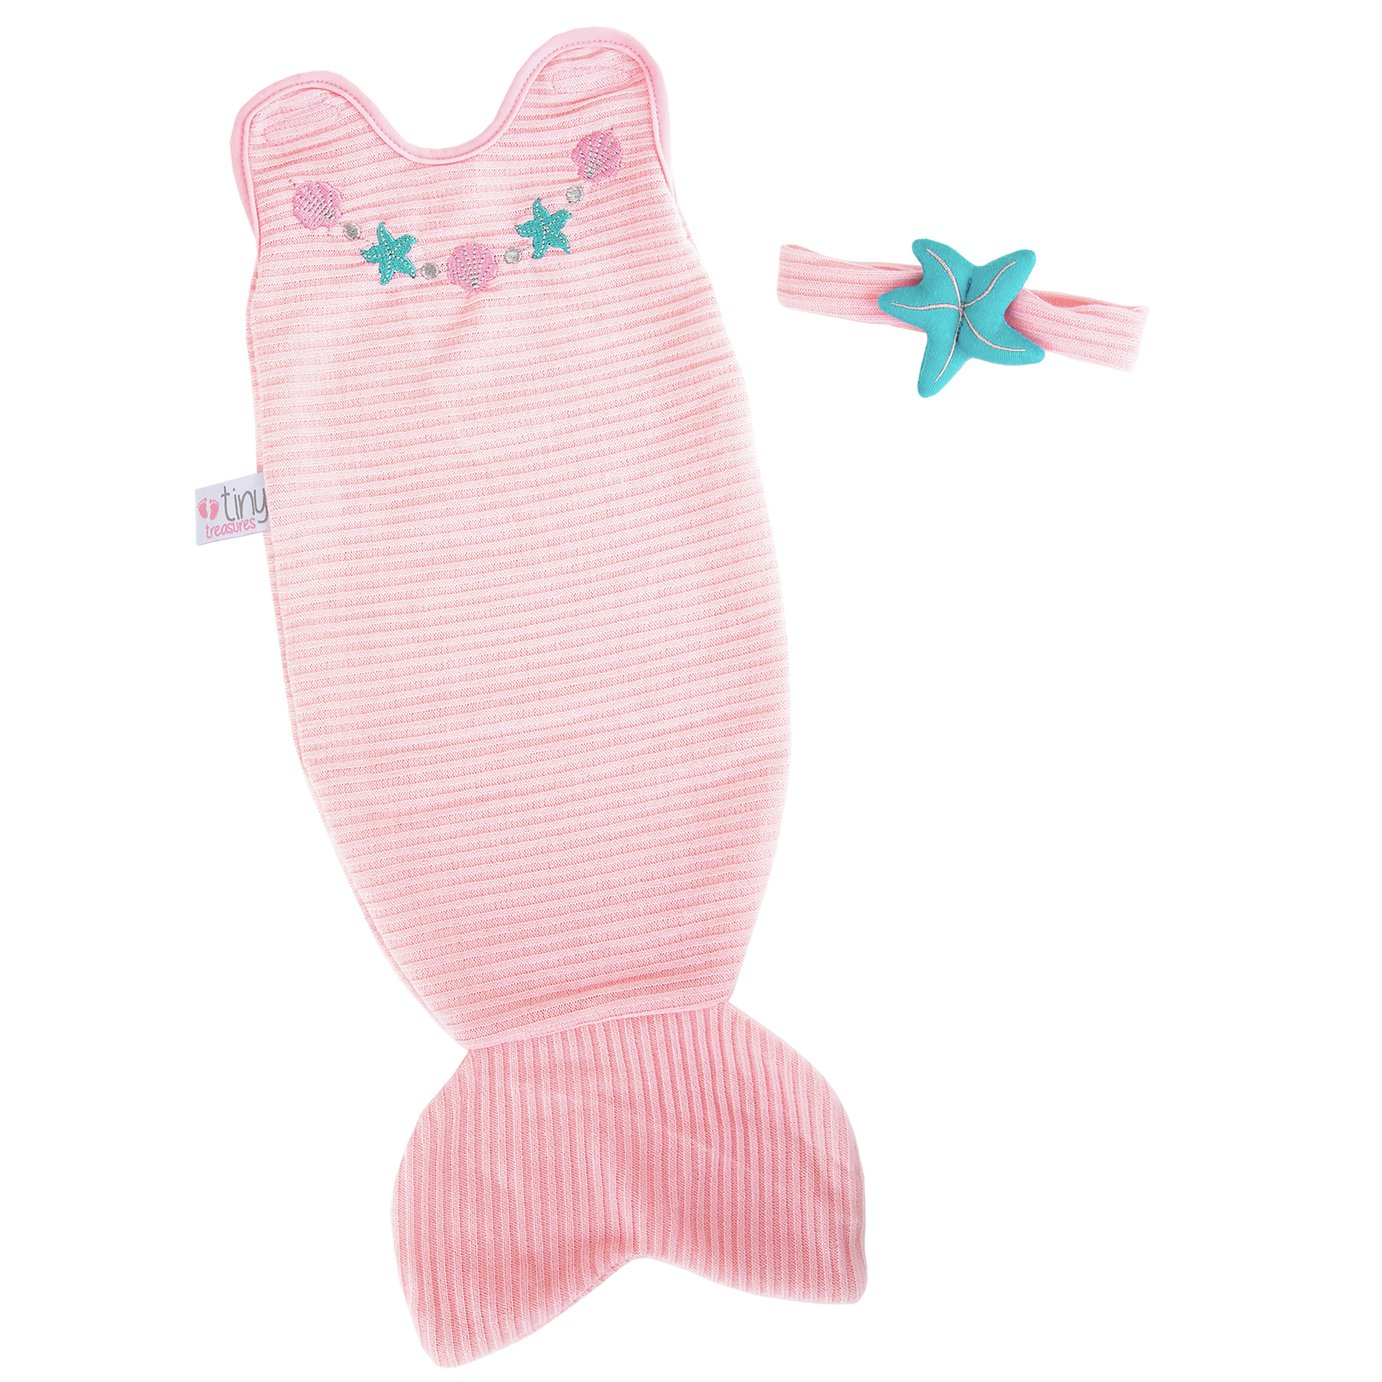 Chad Valley Tiny Treasures Mermaid Outfit review